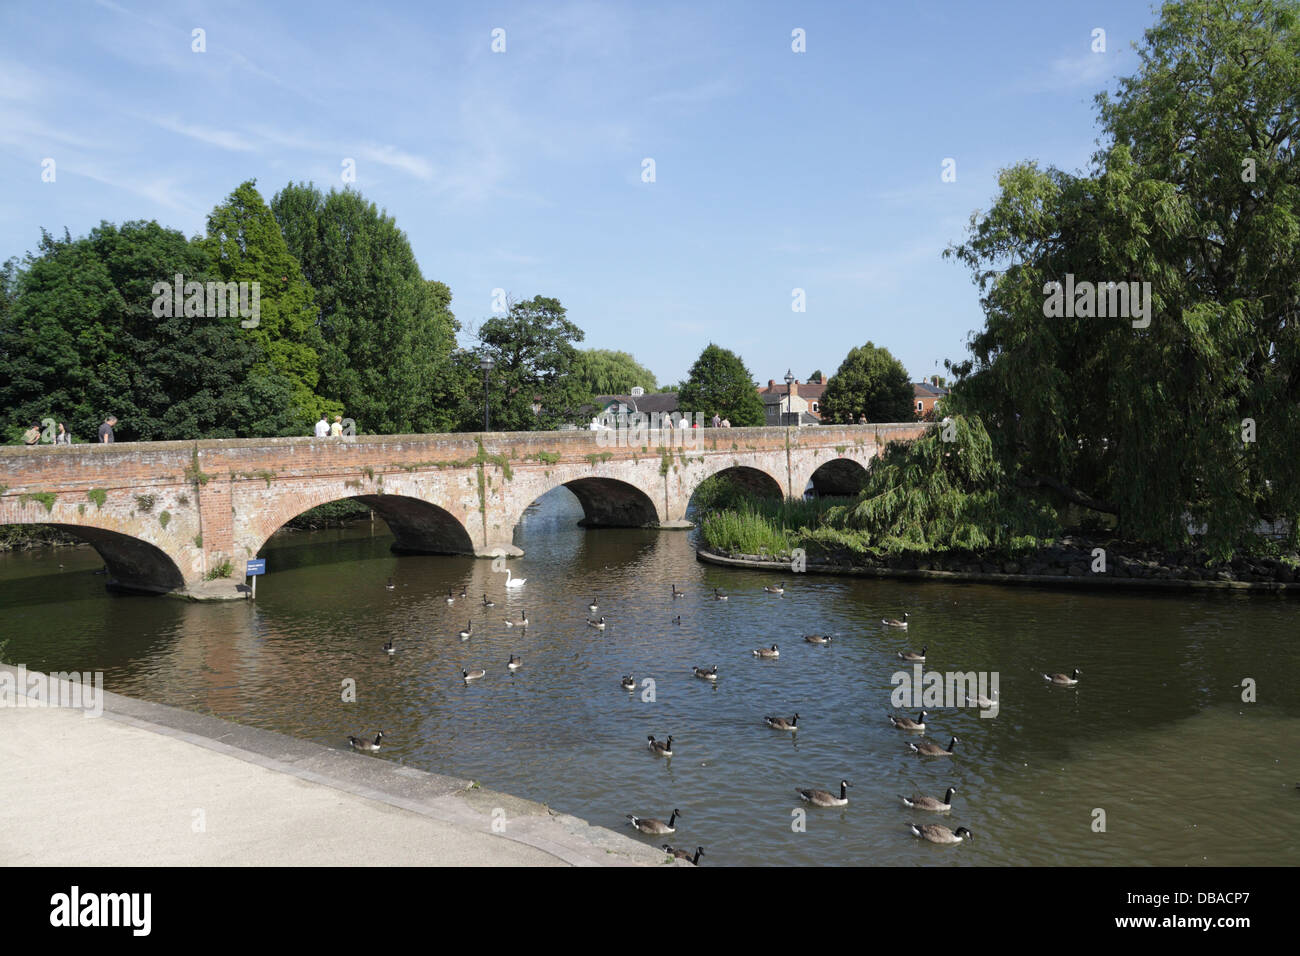 The old Tramway Bridge across the River Avon in Stratford Upon Avon - Stock Image